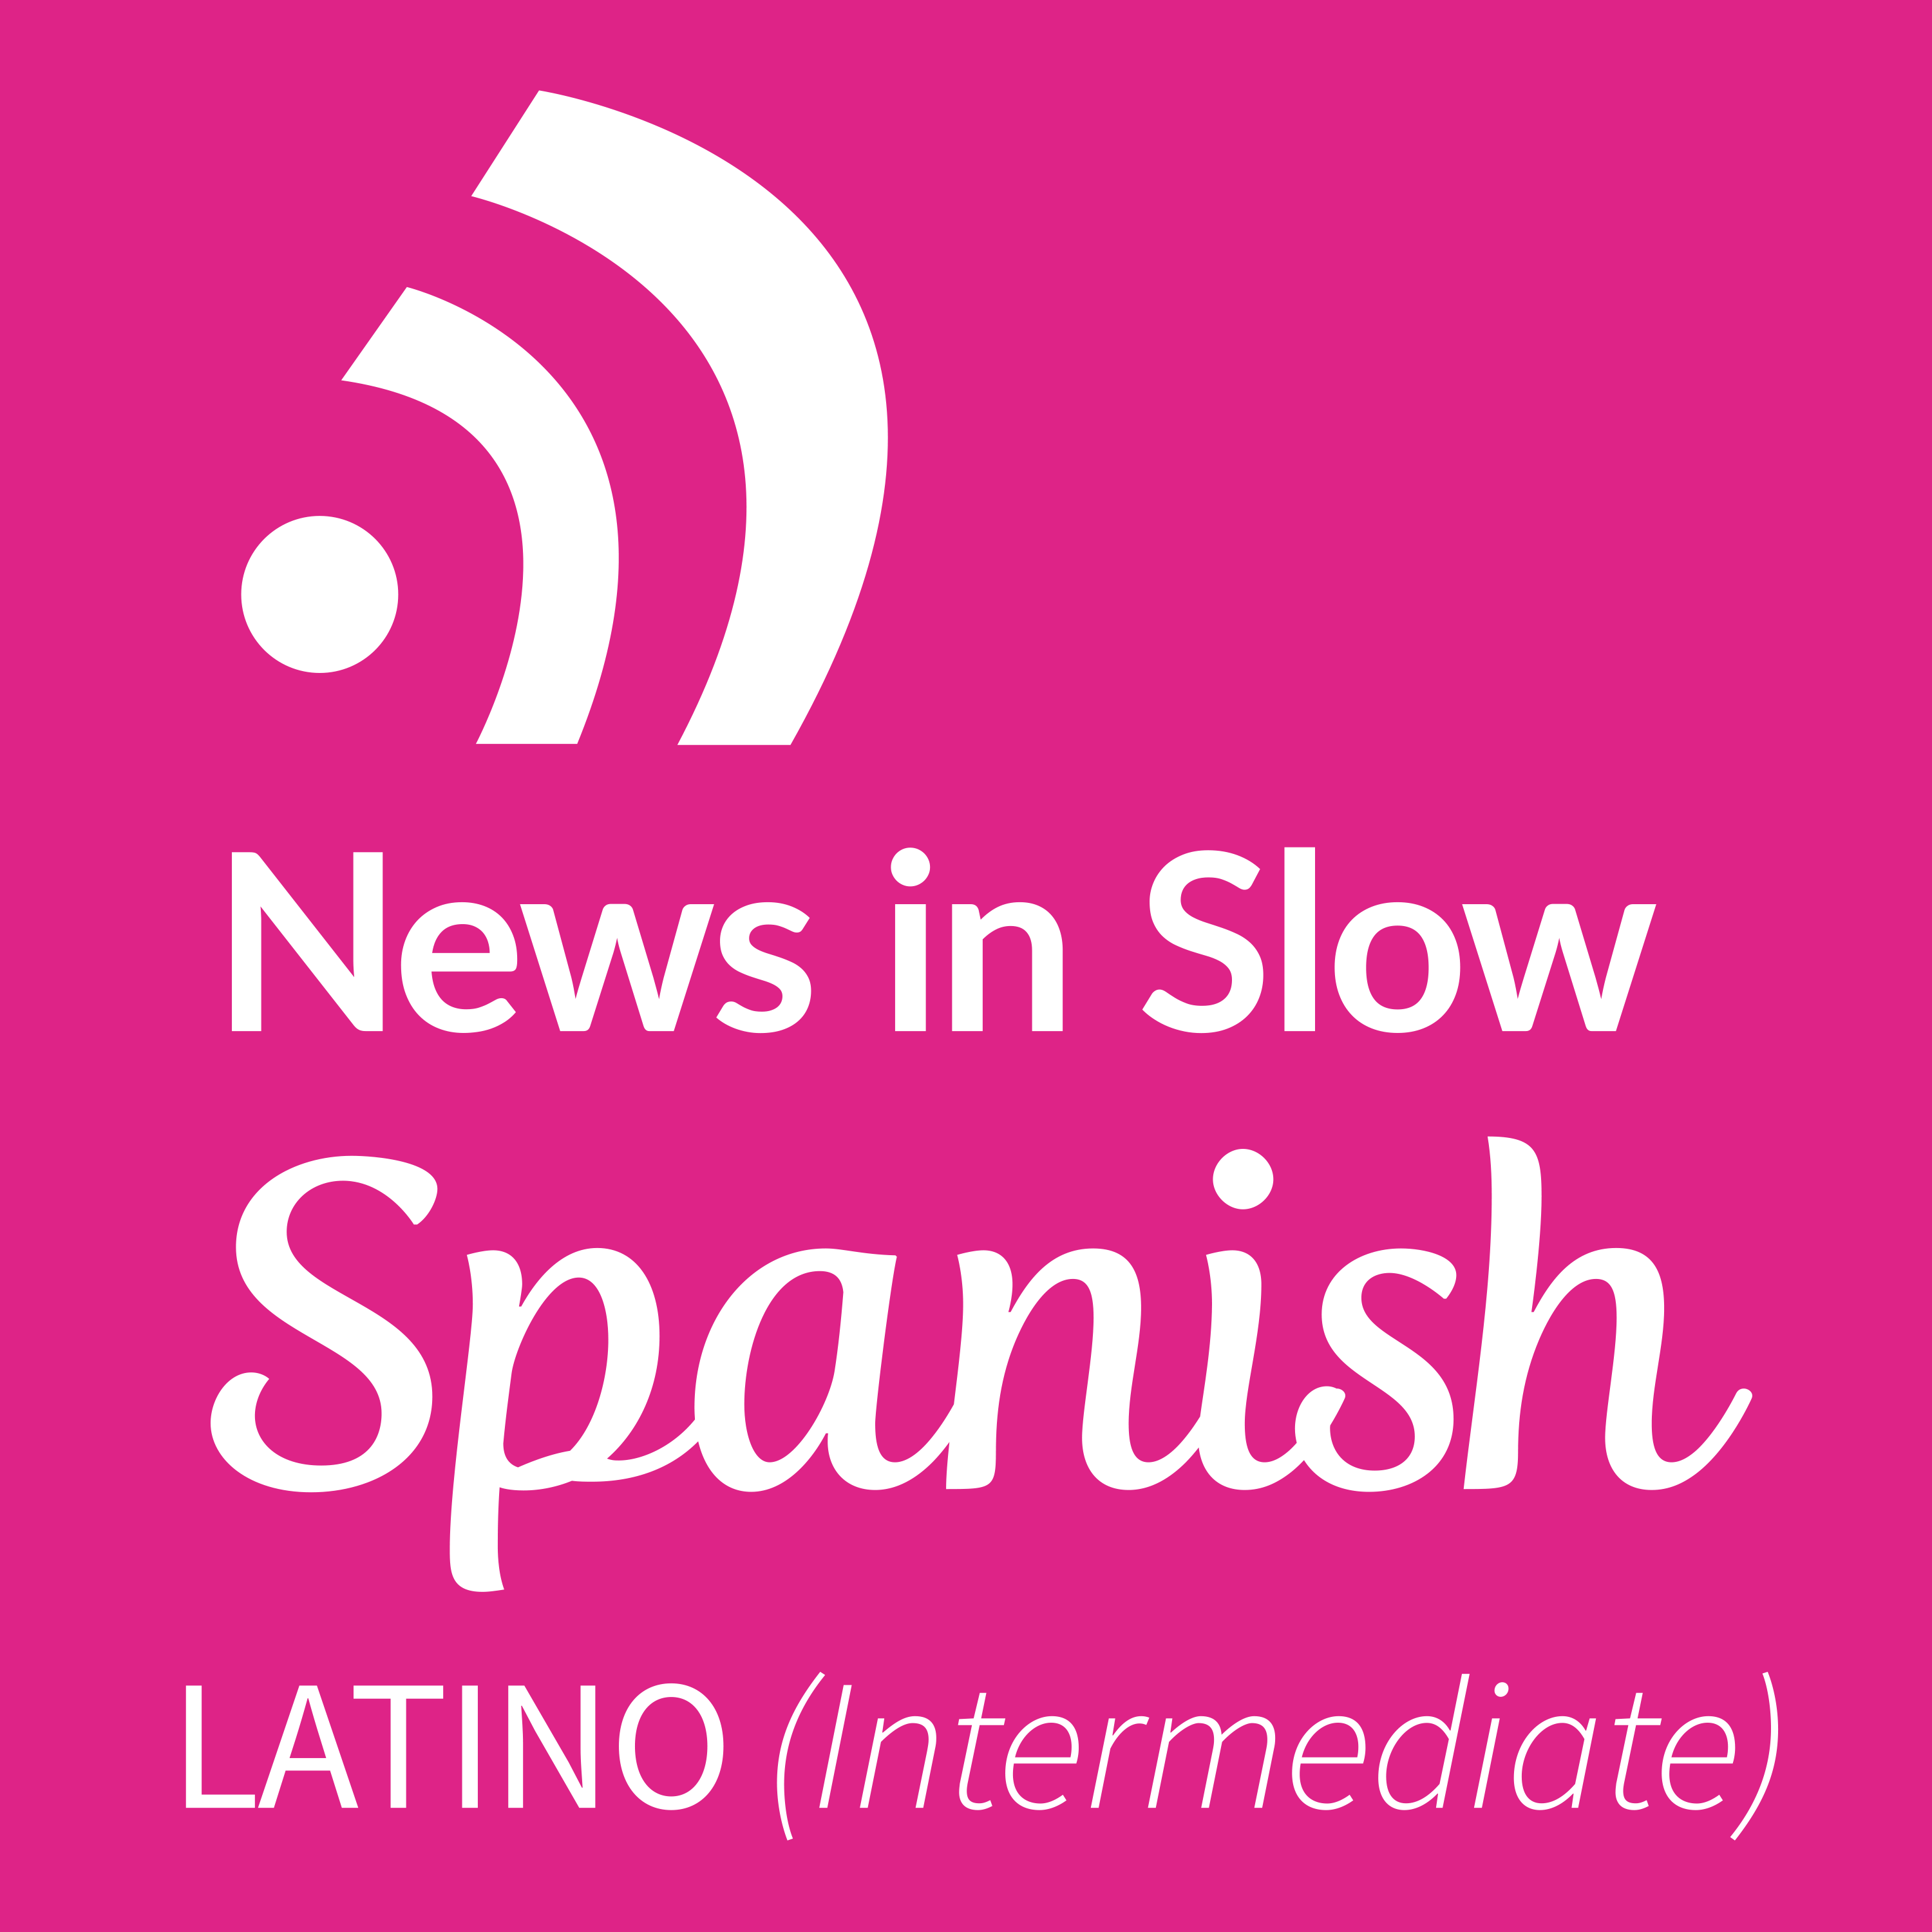 News in Slow Spanish Latino - # 143- Spanish grammar, news and expressions